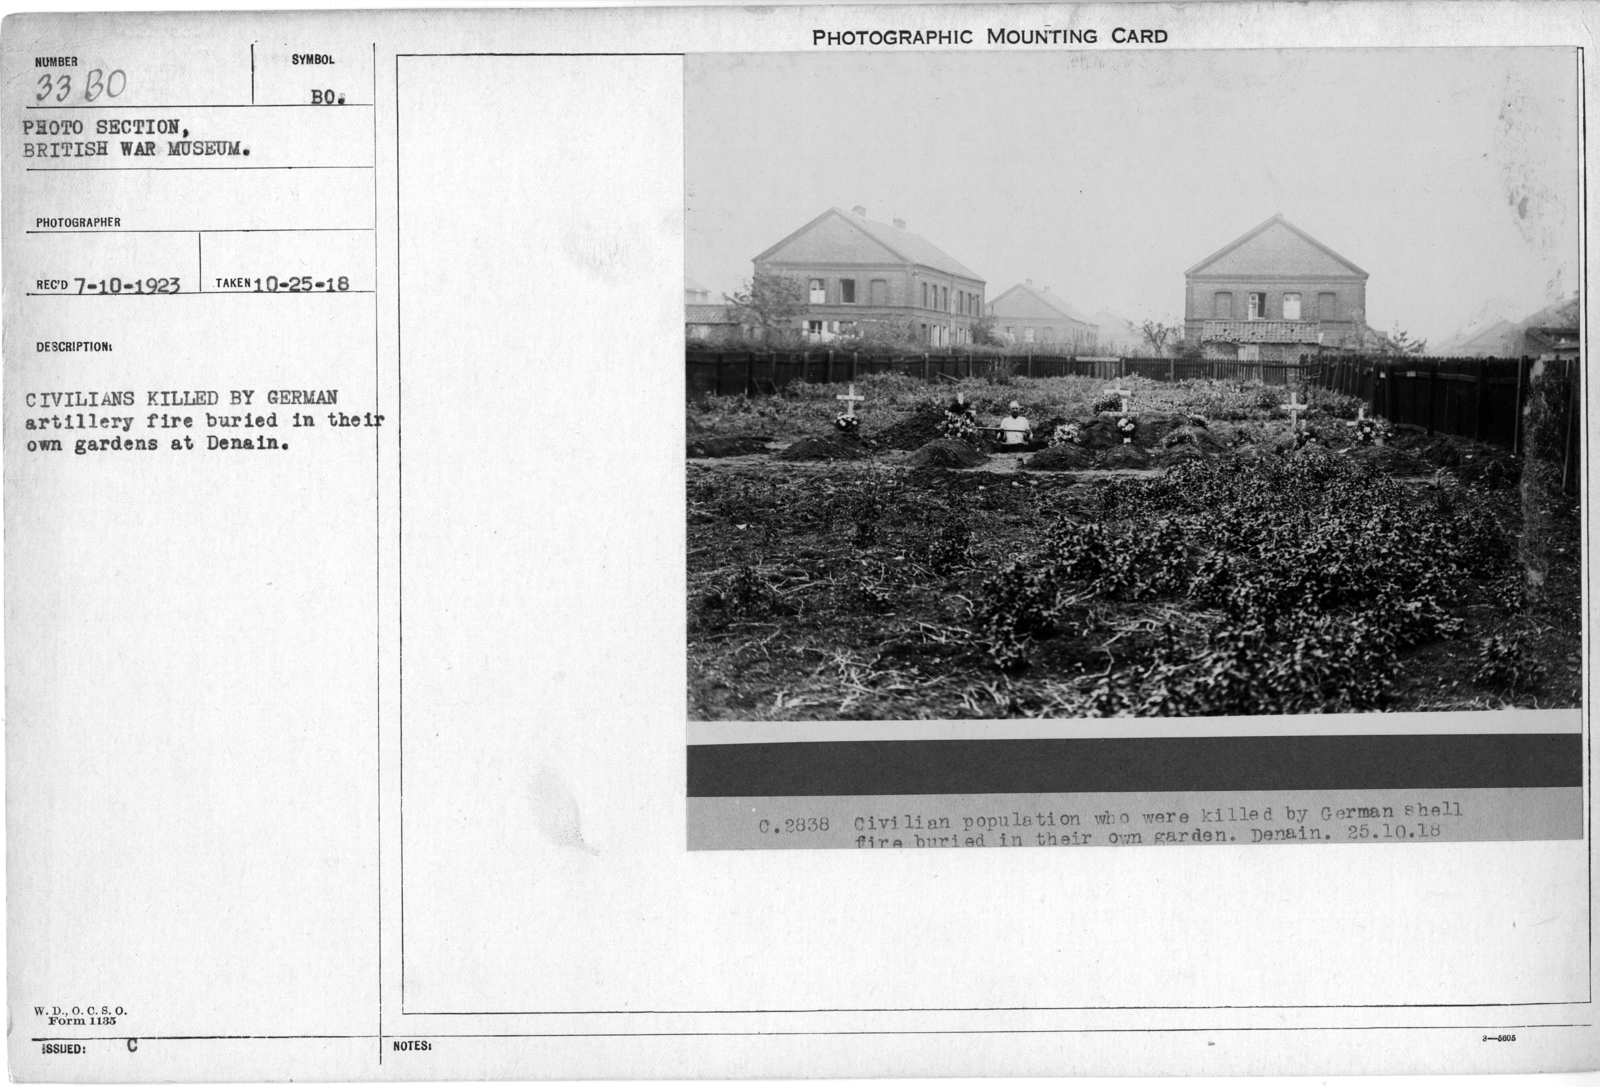 Civilians killed by German artillery fire buried in their own gardens at Denain